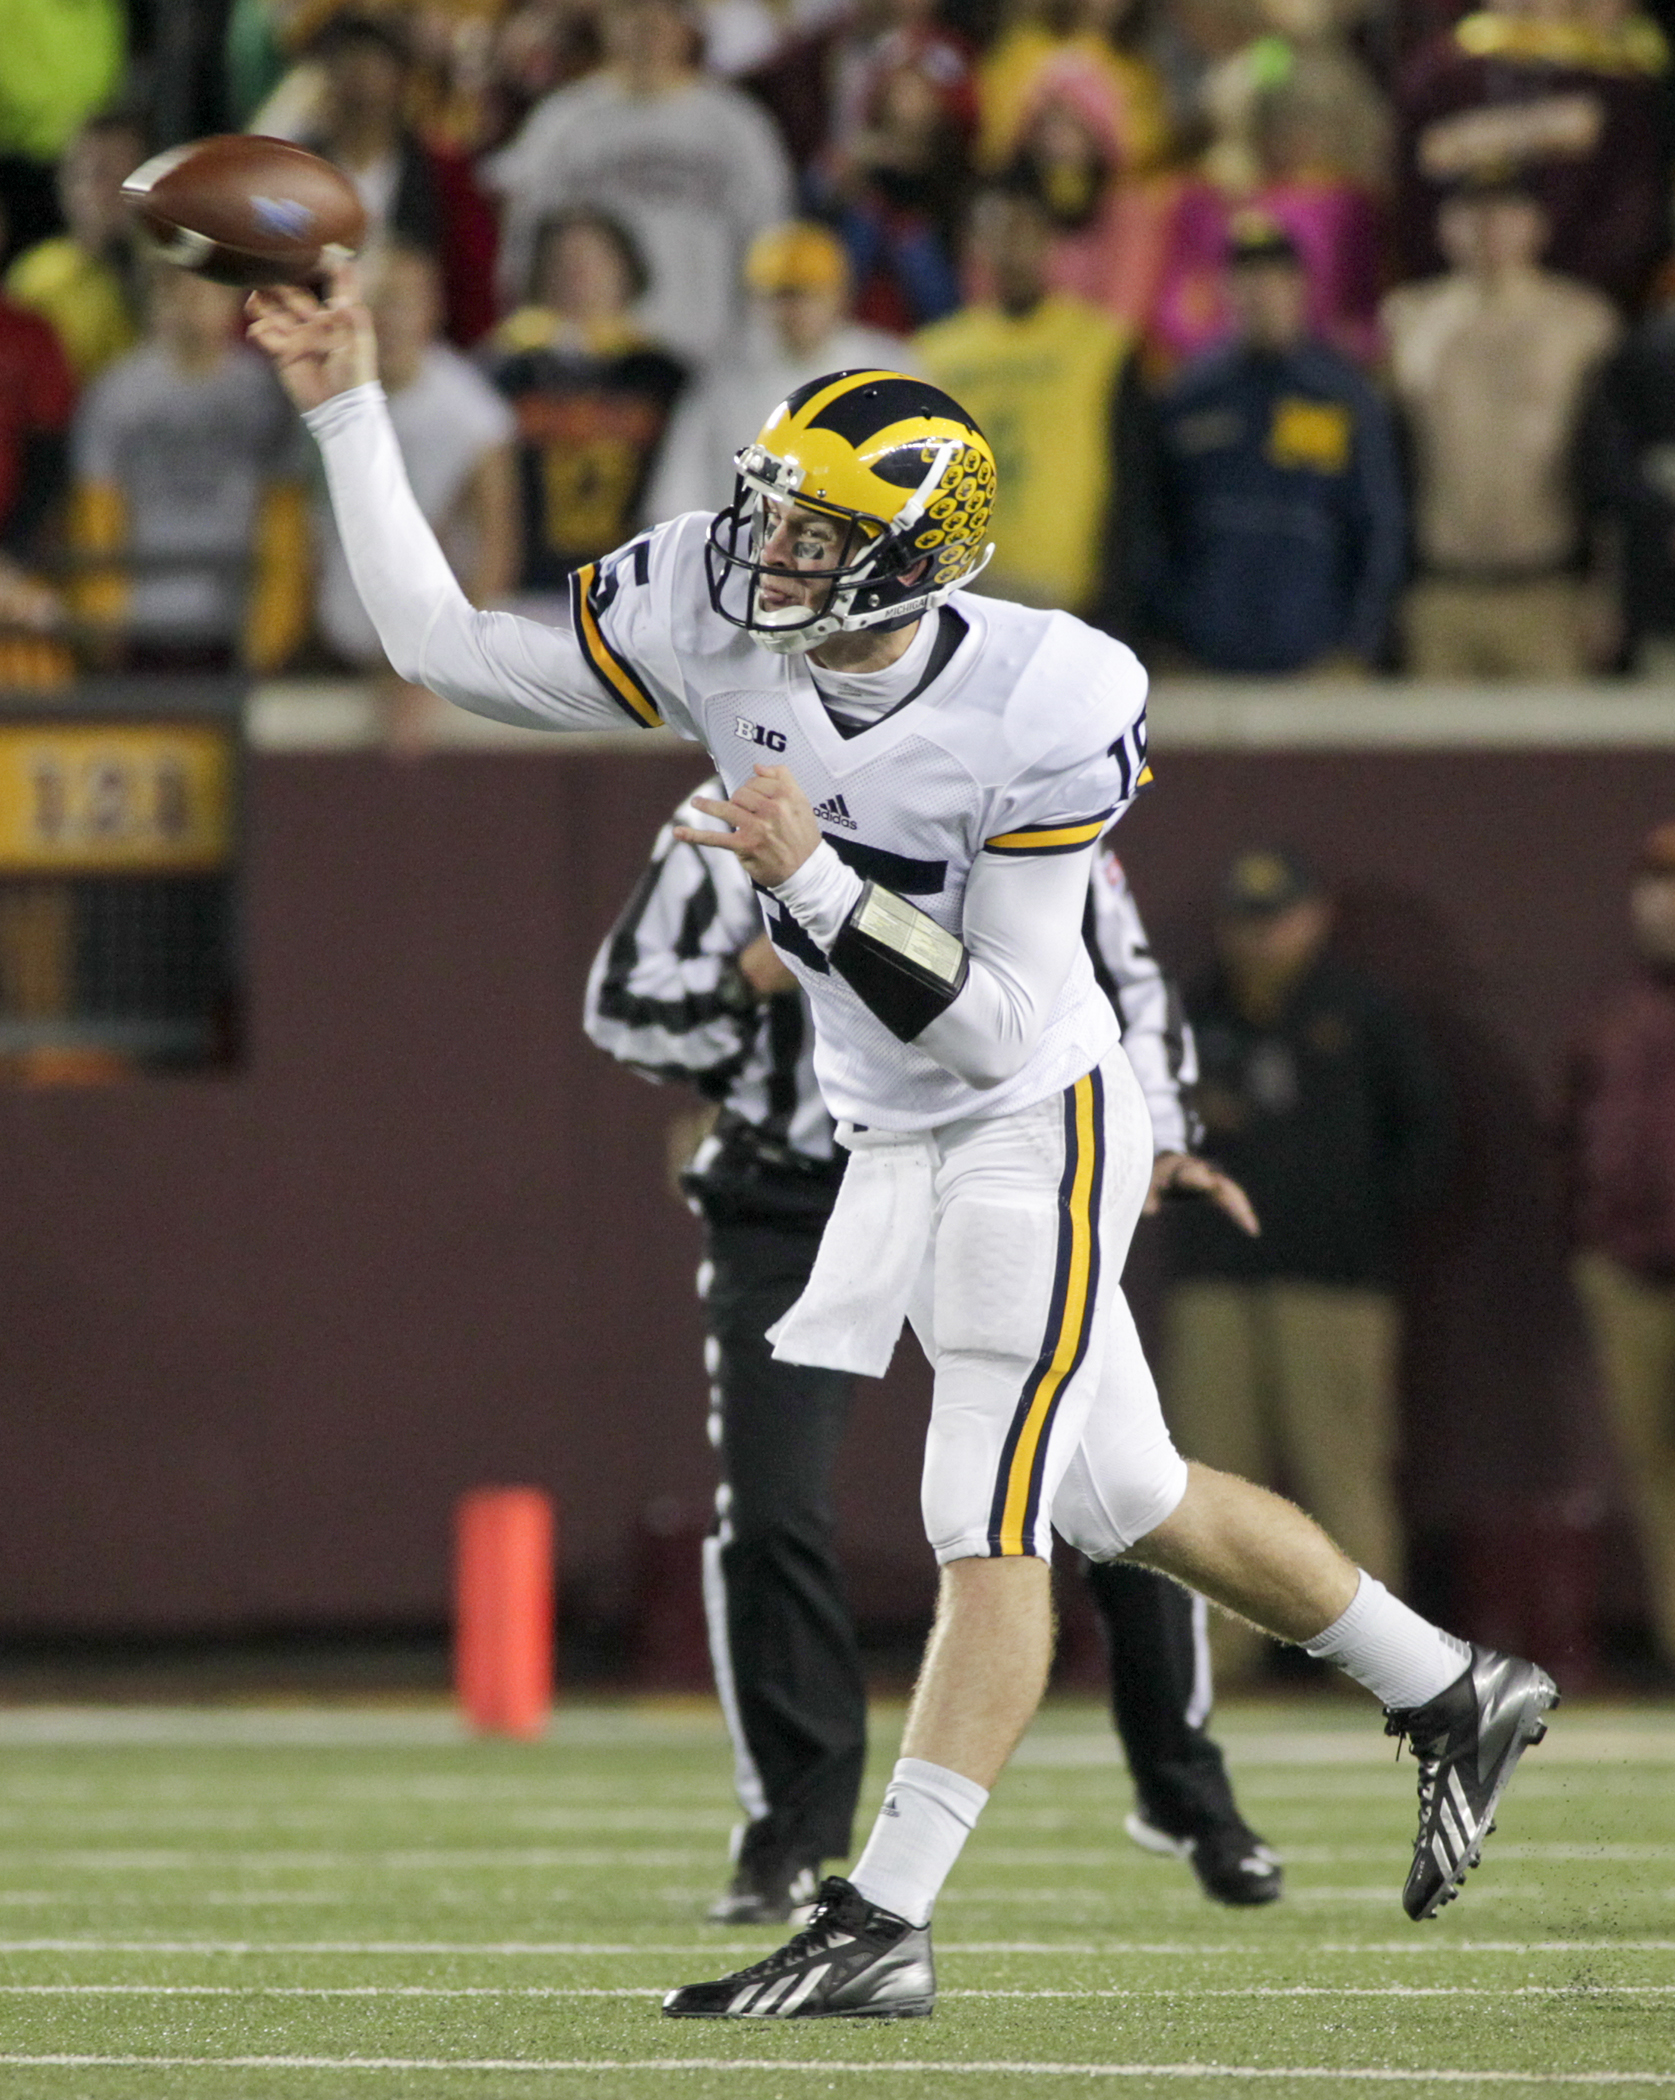 Michigan quarterback Jake Rudock (15) looks to pass during the first half of an NCAA college football game Saturday against Minnesota, Nov. 31, 2015, in Minneapolis.(AP Photo/Paul Battaglia)